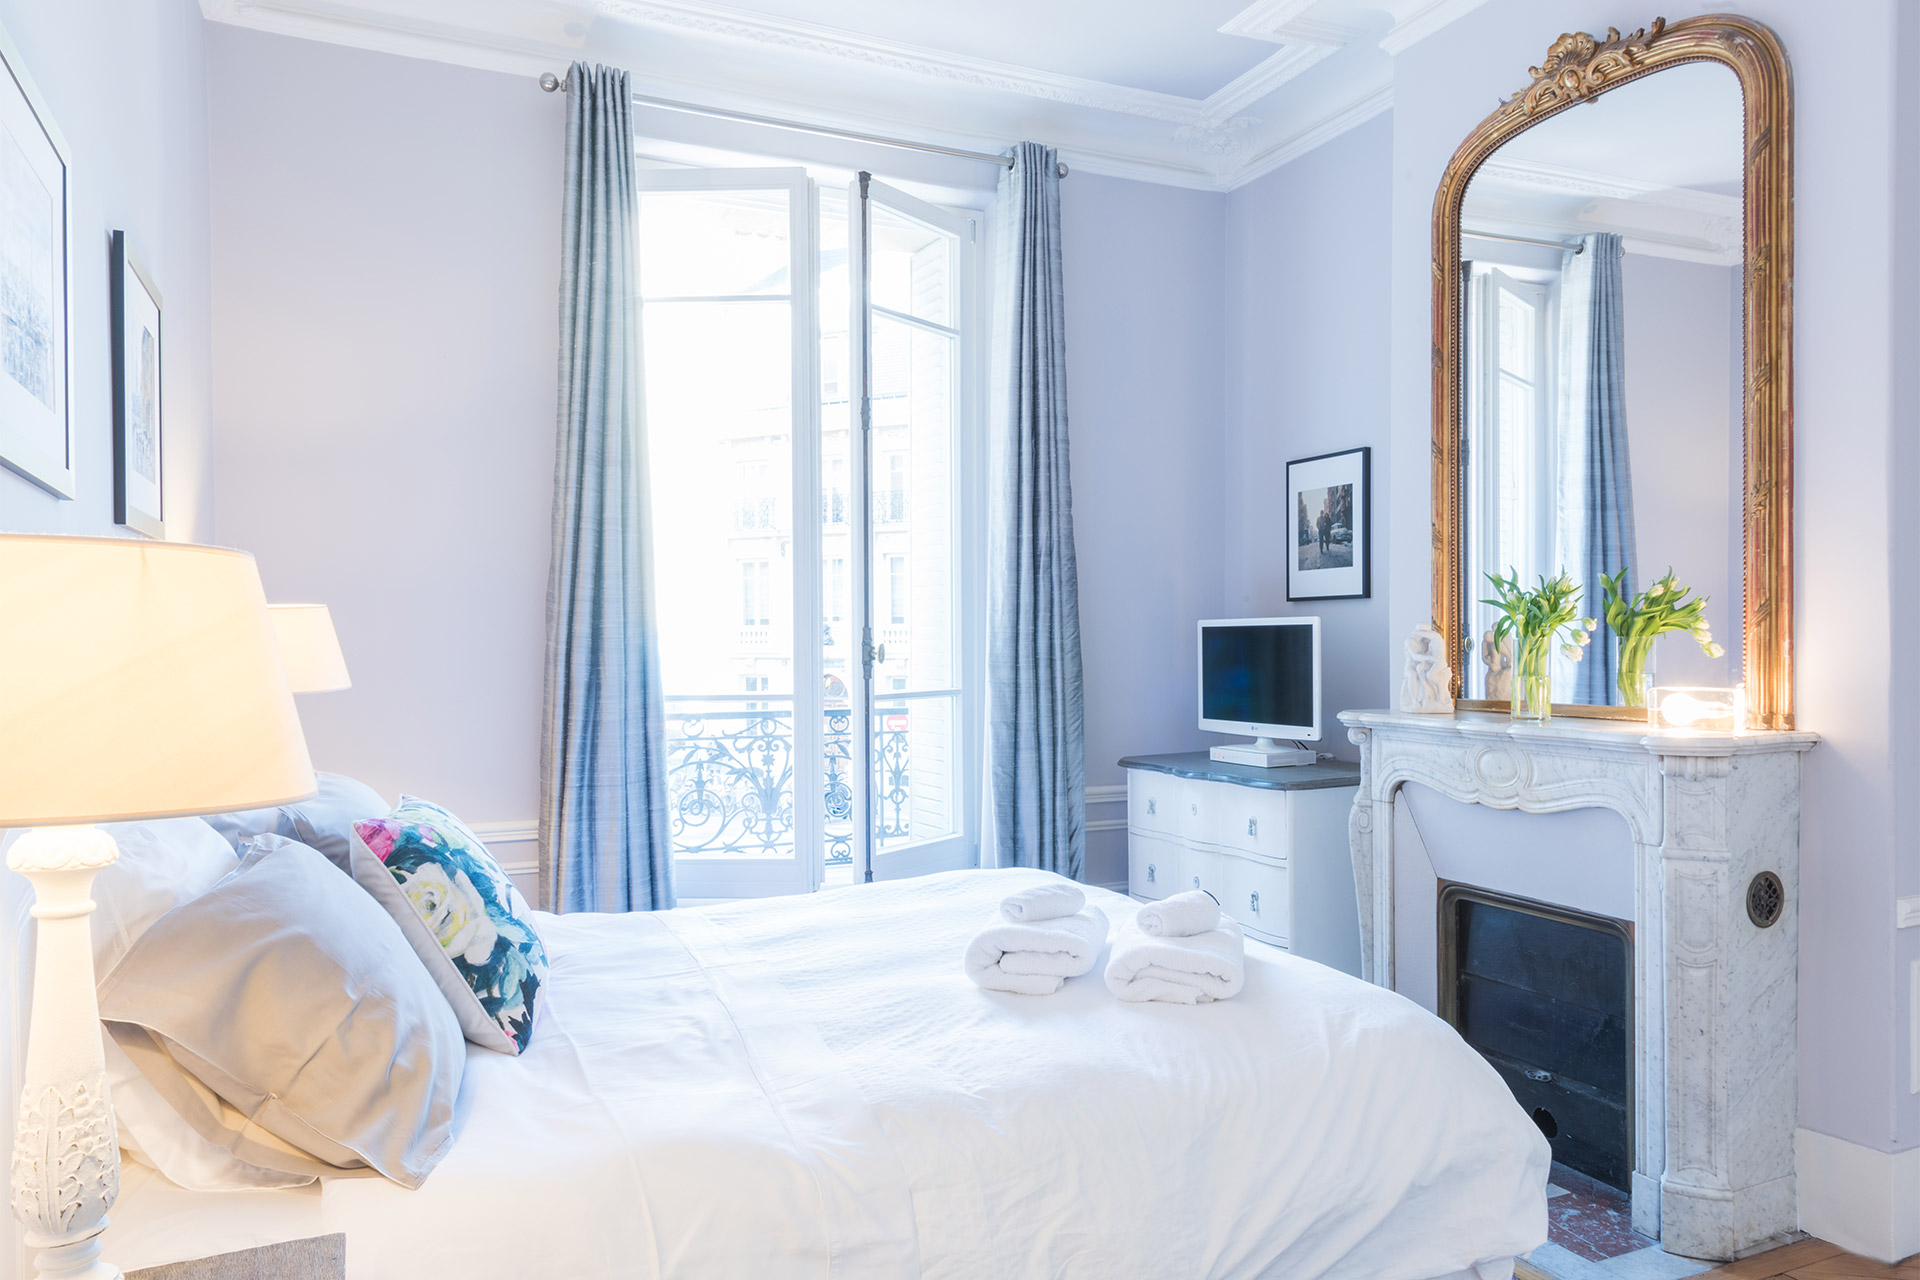 The king size bed is a cozy spot to read in bed in the Maubert vacation rental offered by Paris Perfect